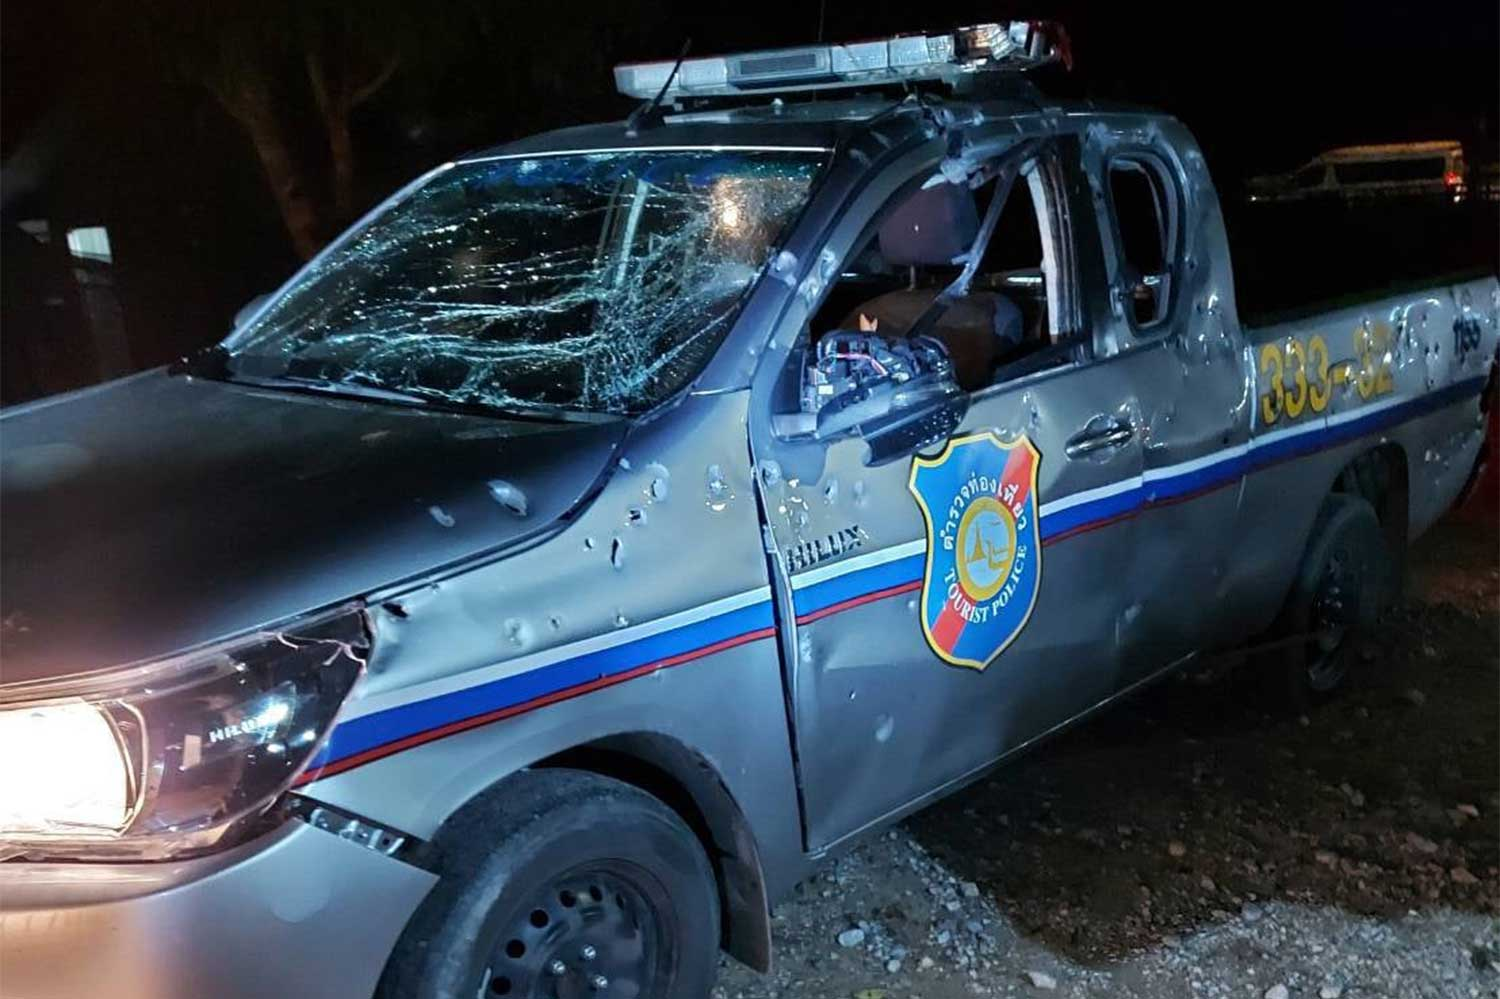 The tourist police vehicle damaged by a roadside bomb in Bannang Sata district, Yala, on Thursday night. A tourist policeman and a police volunteer were wounded.(Photo: @maeluang318133, Maeluang Pattani Centre Facebook page)